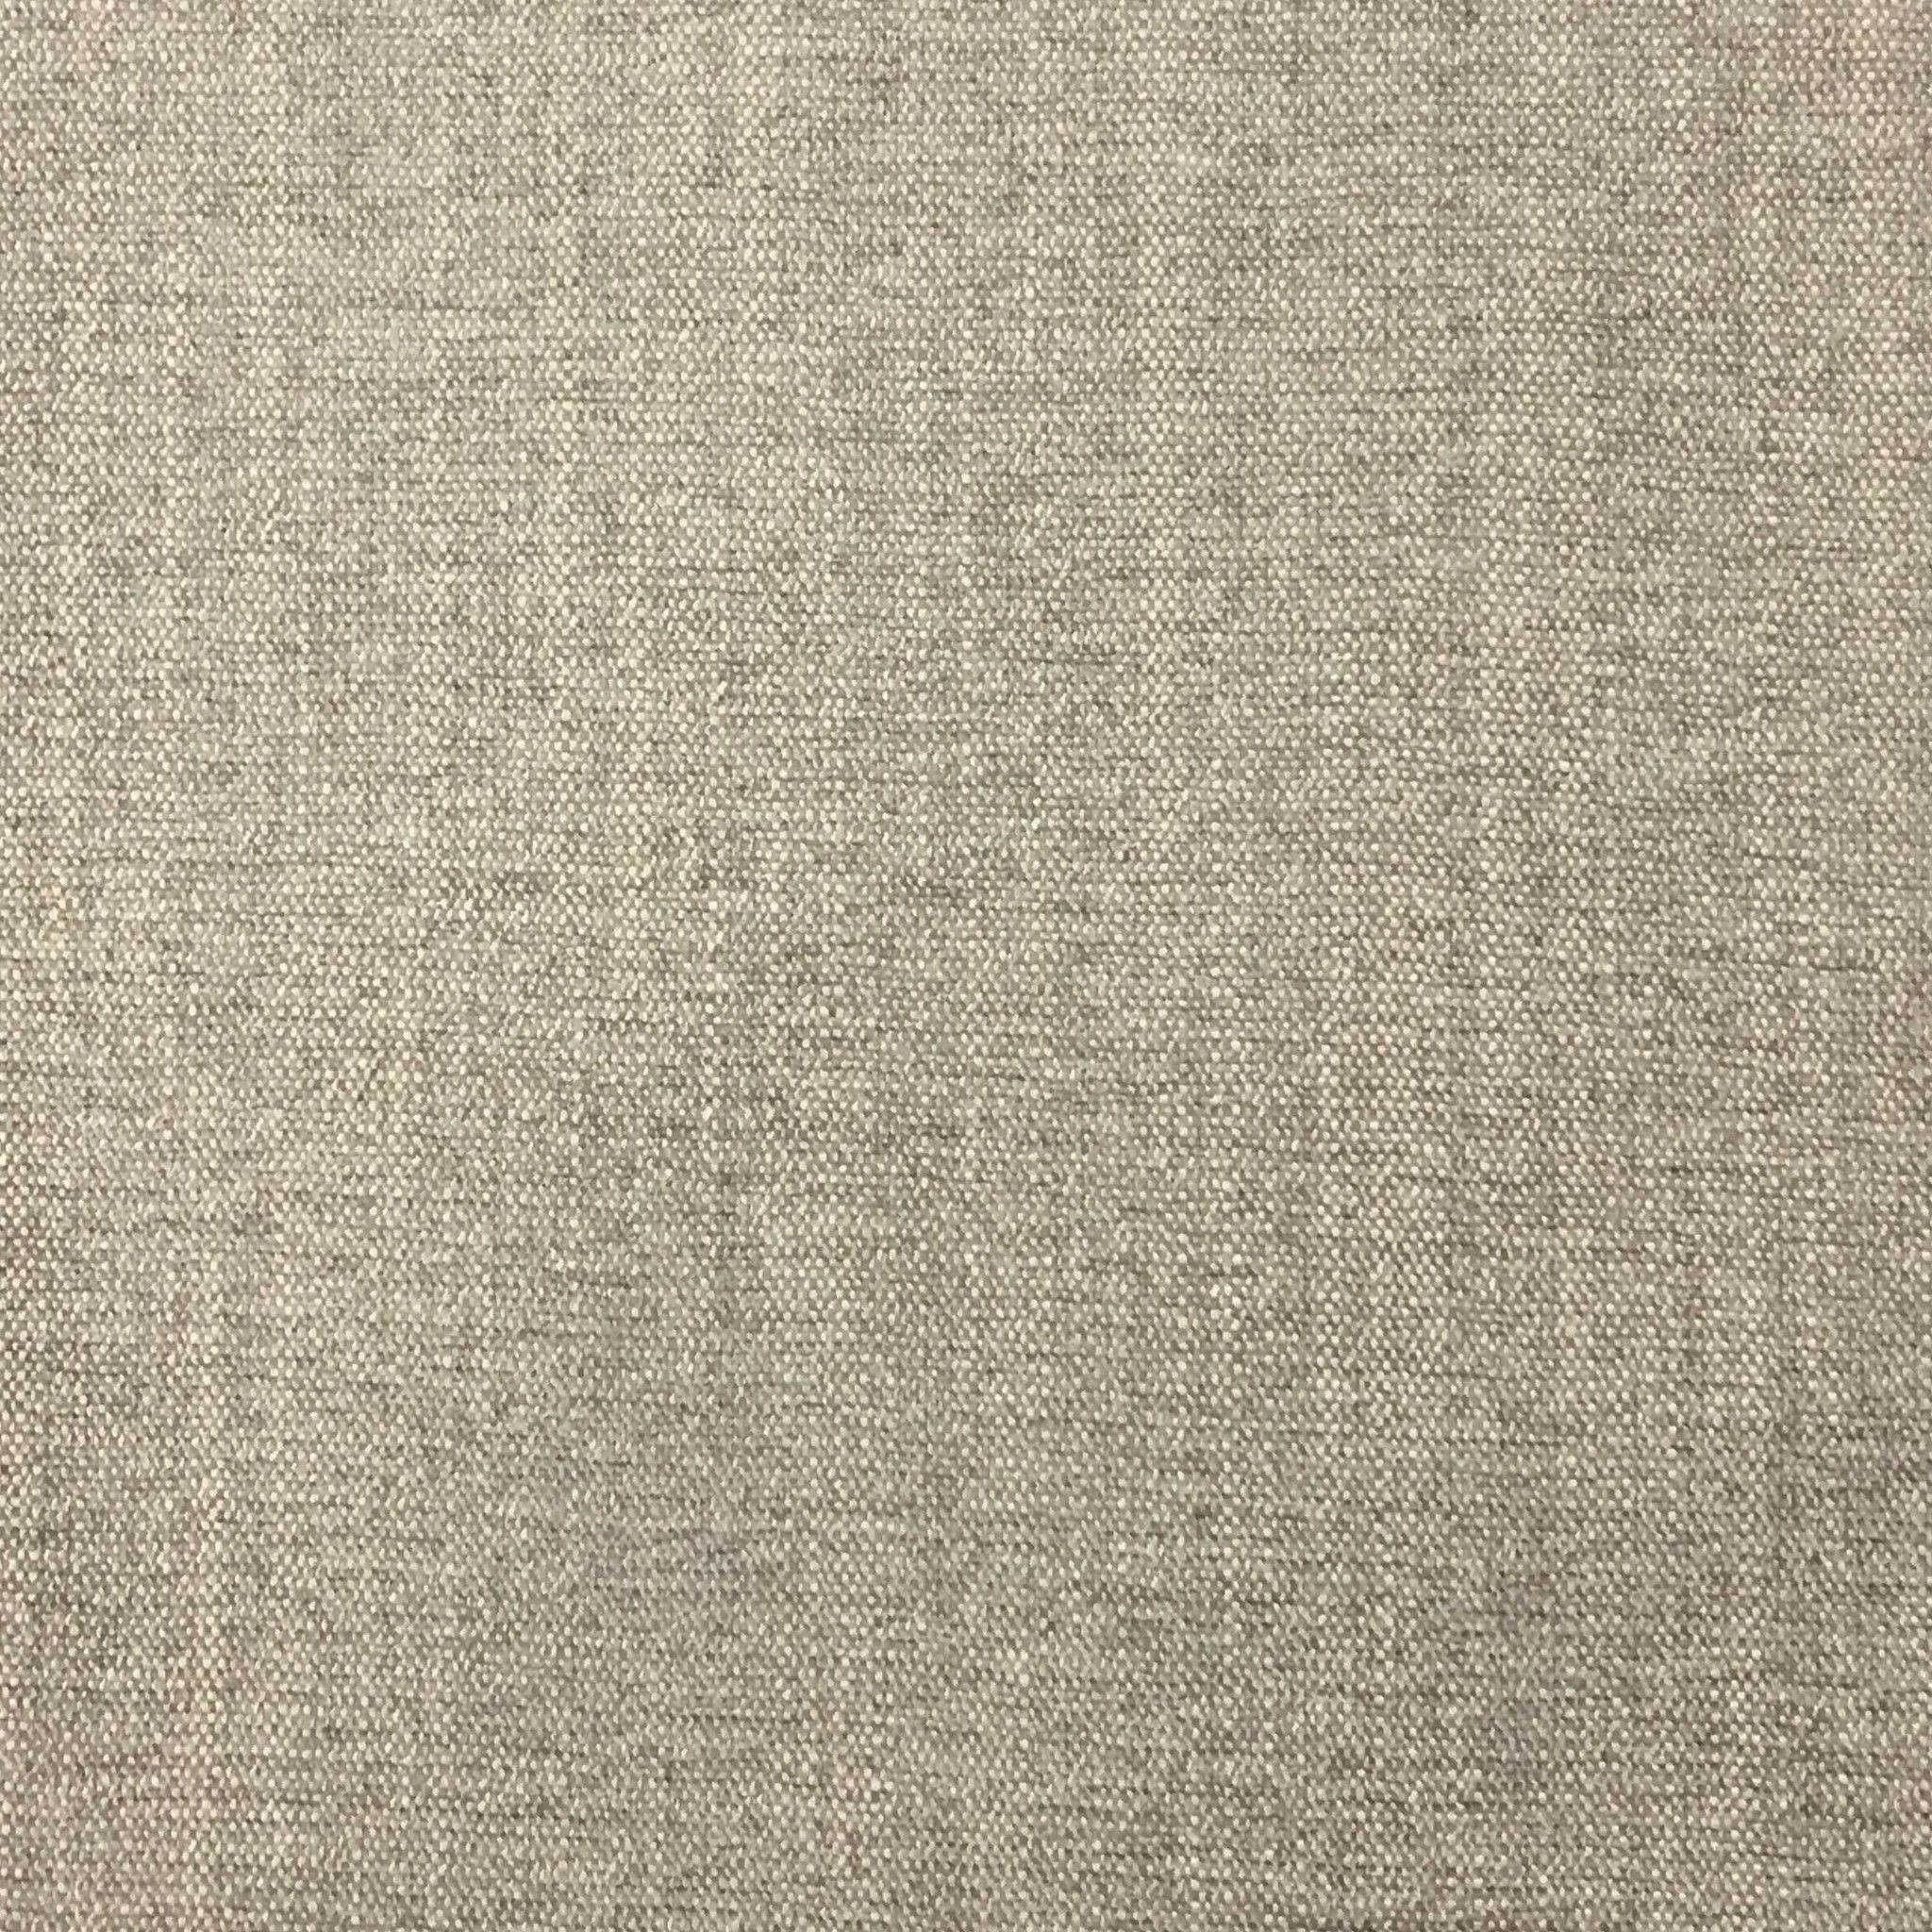 Textured Chenille Upholstery Fabric